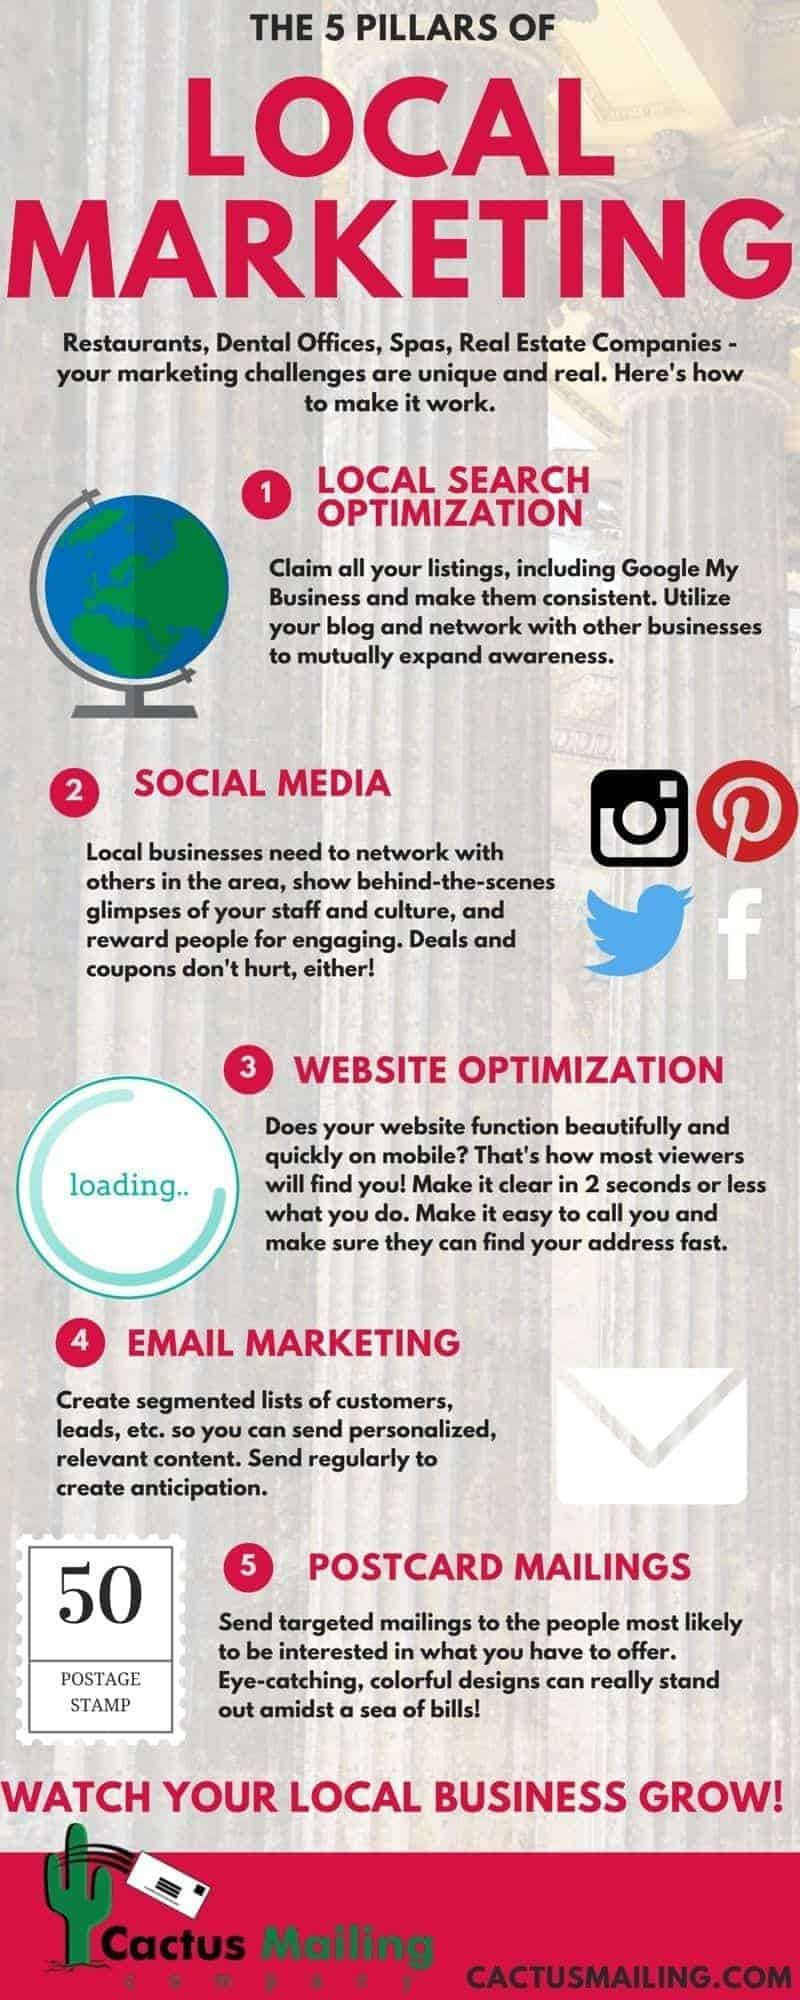 local marketing strategies infographic